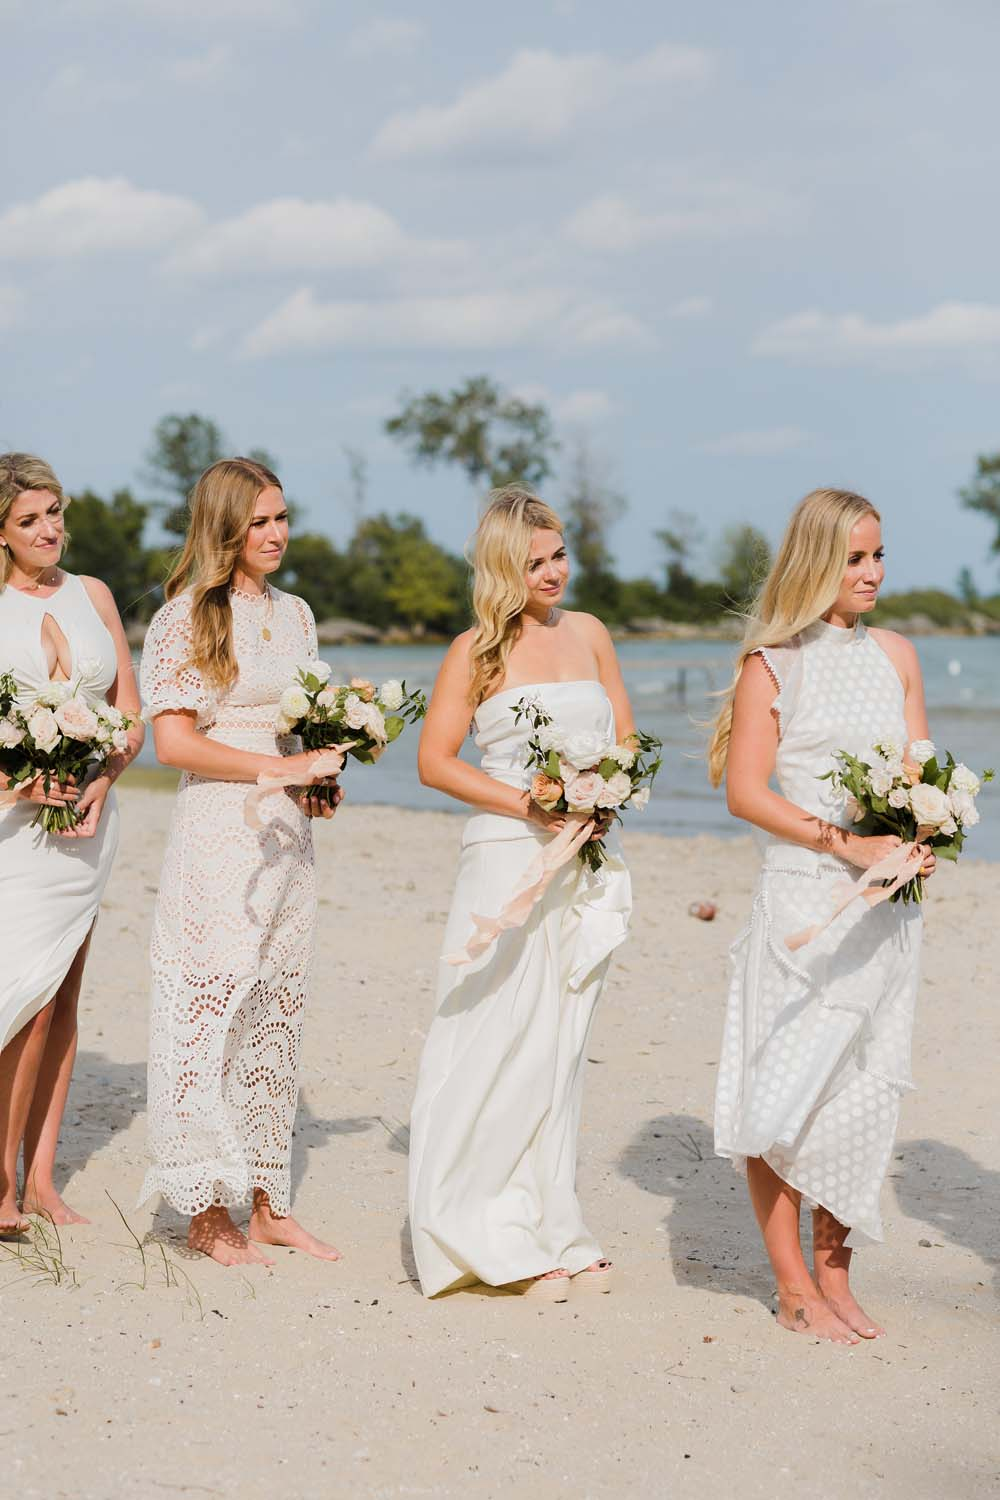 A Whimsical Wedding at Windmill Point, Ontario - Bridal Party